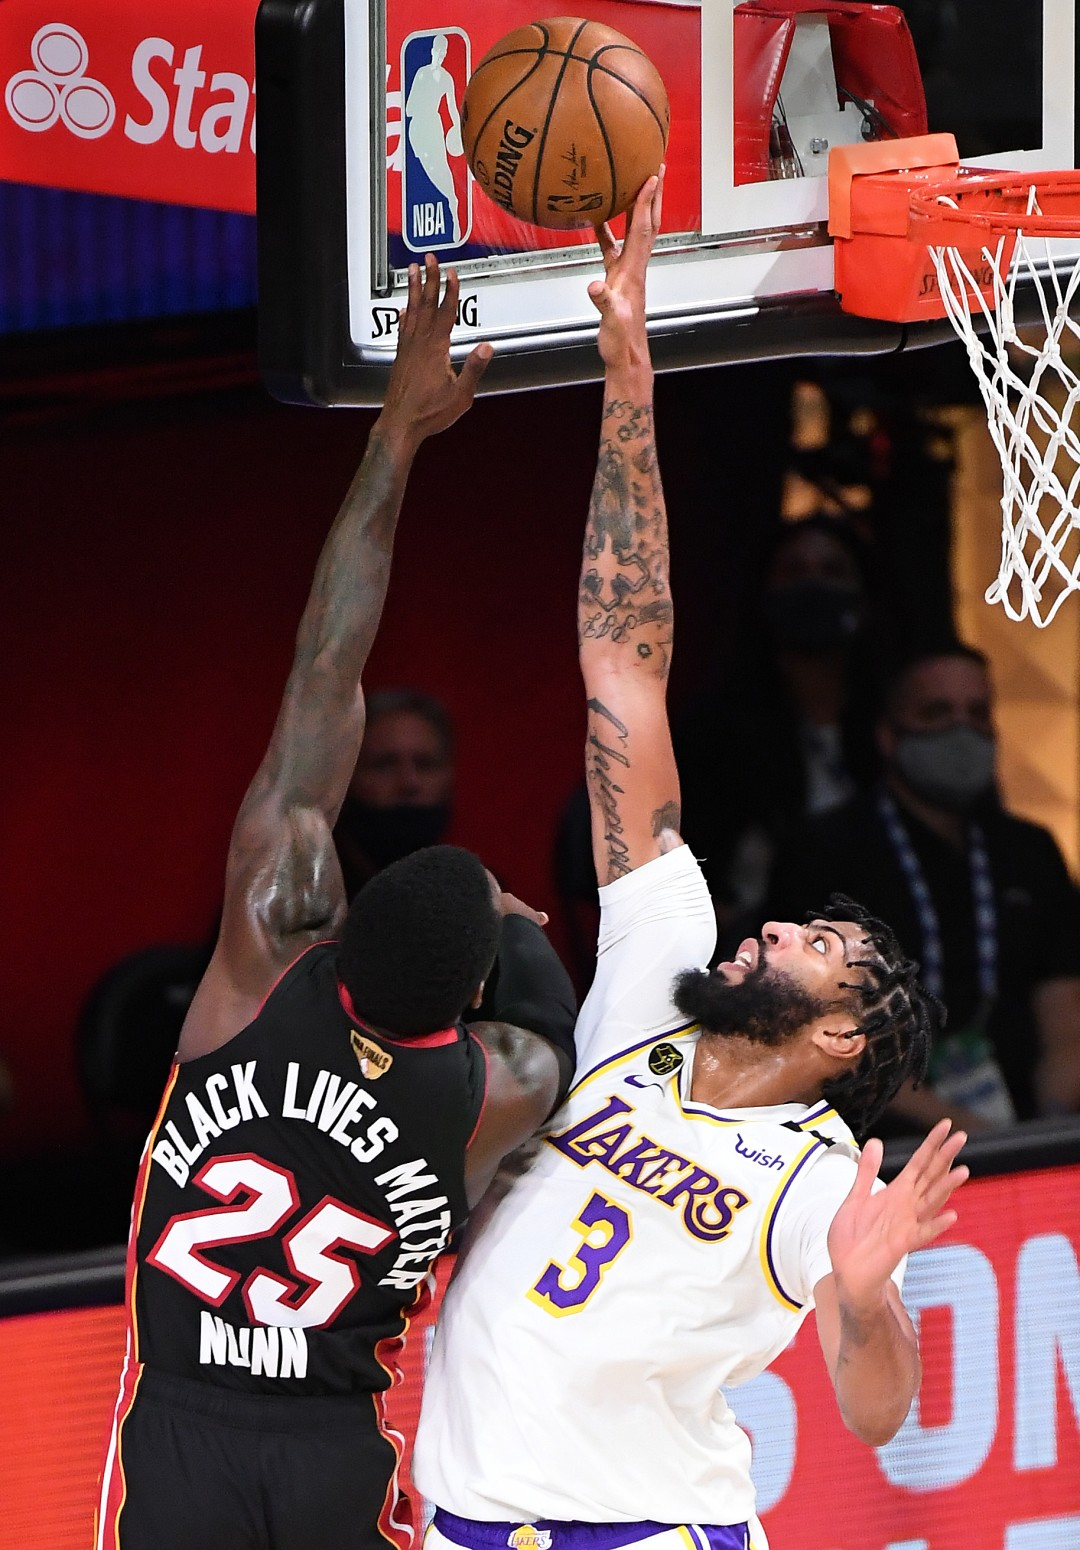 Lakers forward Anthony Davis blocks a shot by Miami Heat guard Kendrick Nunn during the second quarter of Game 6 of the NBA Finals on Sunday.(Wally Skalij / Los Angeles Times)